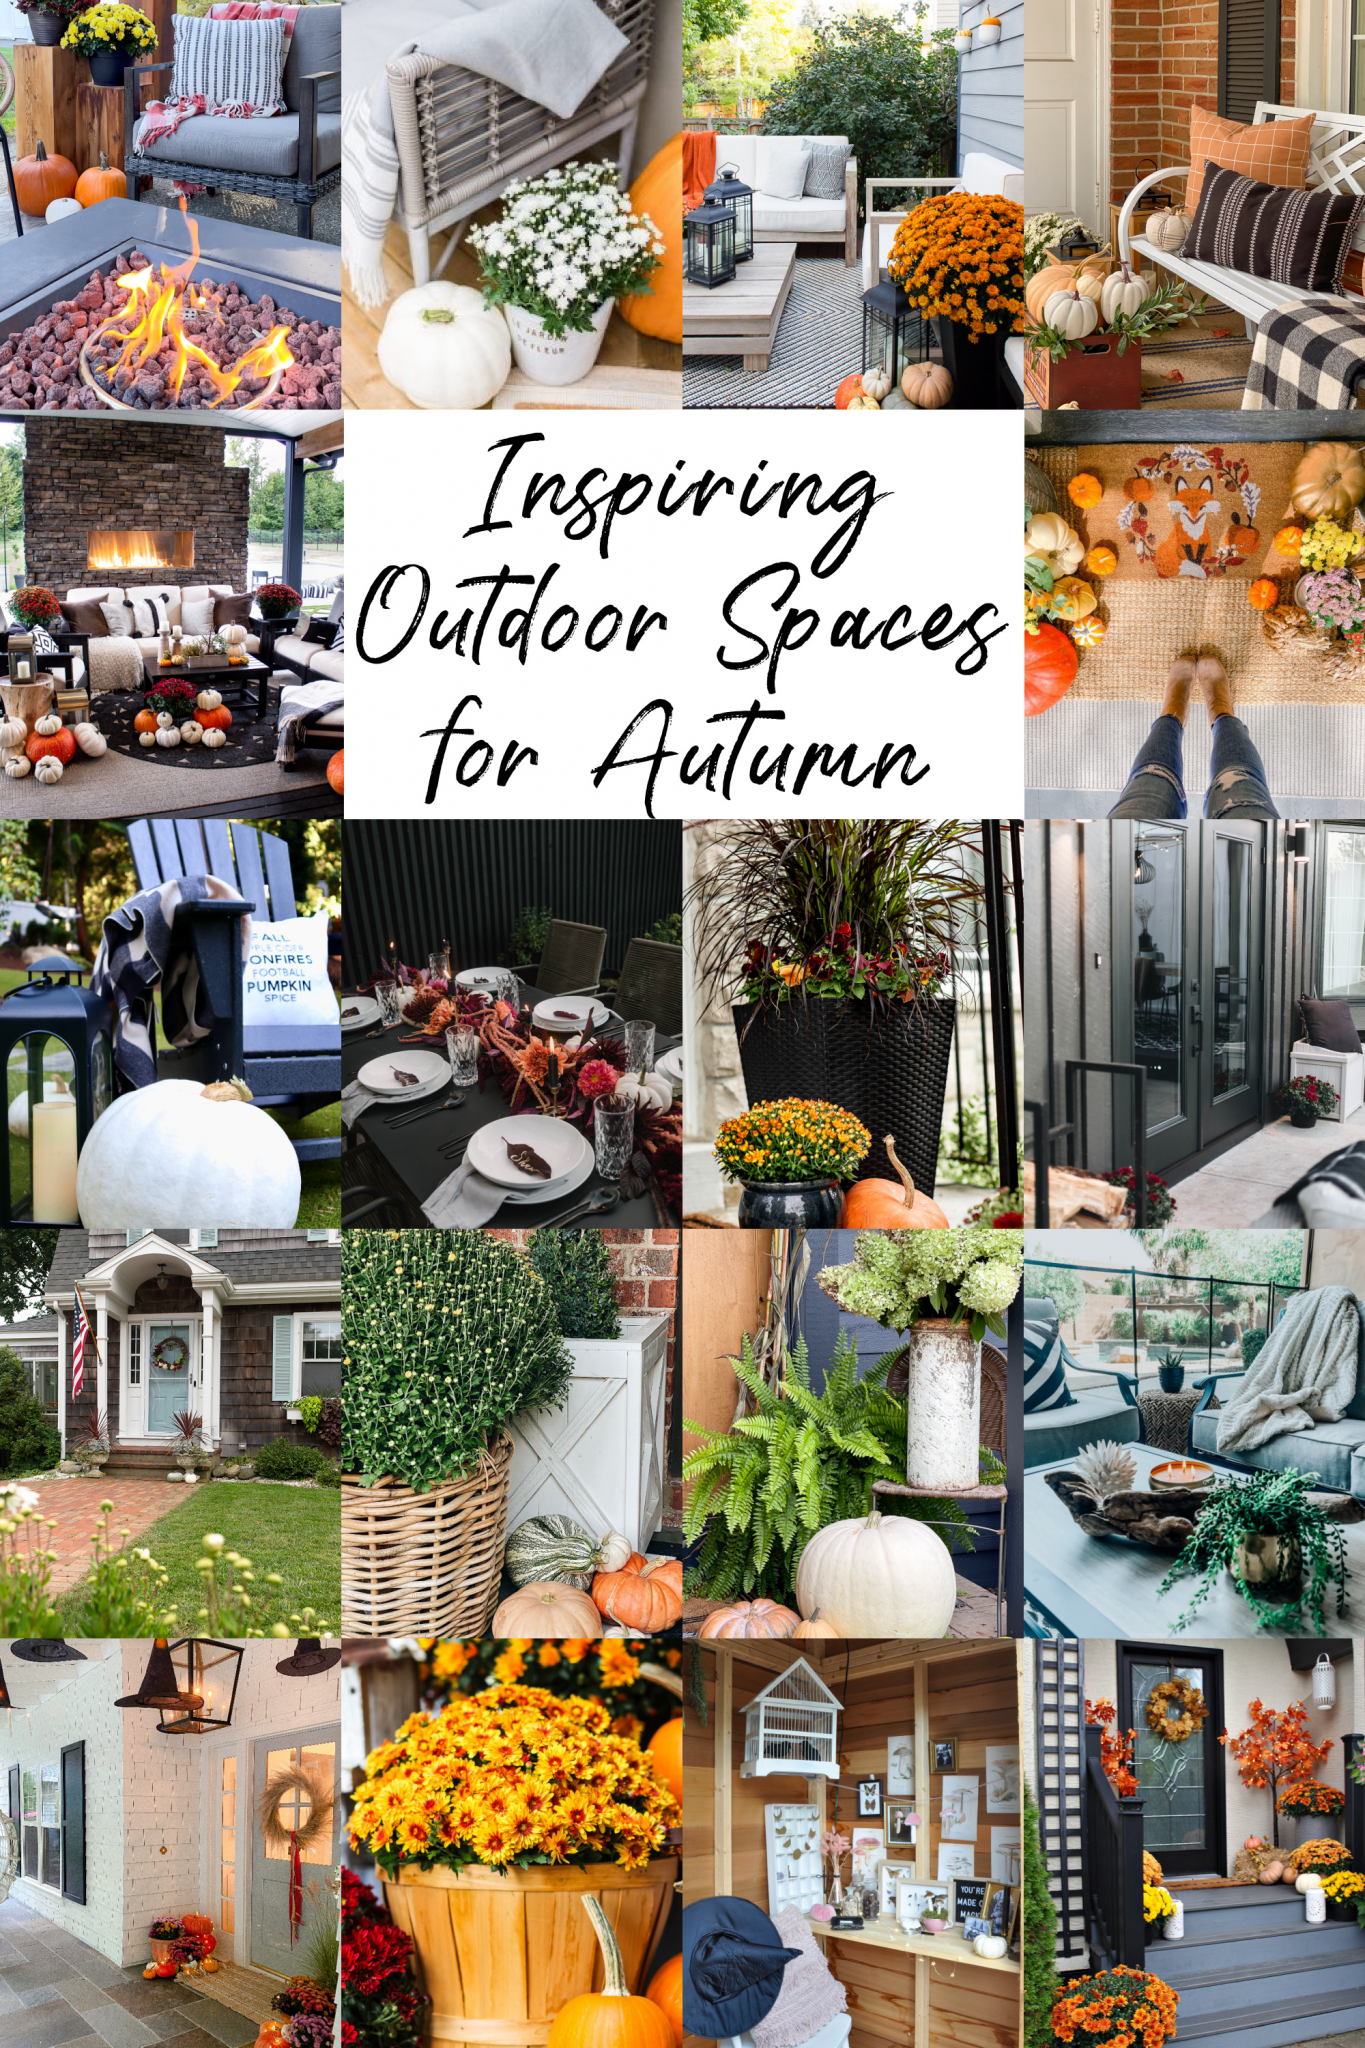 Halloween Porch Decor With Witches Hats and Candles via @modernglamhome